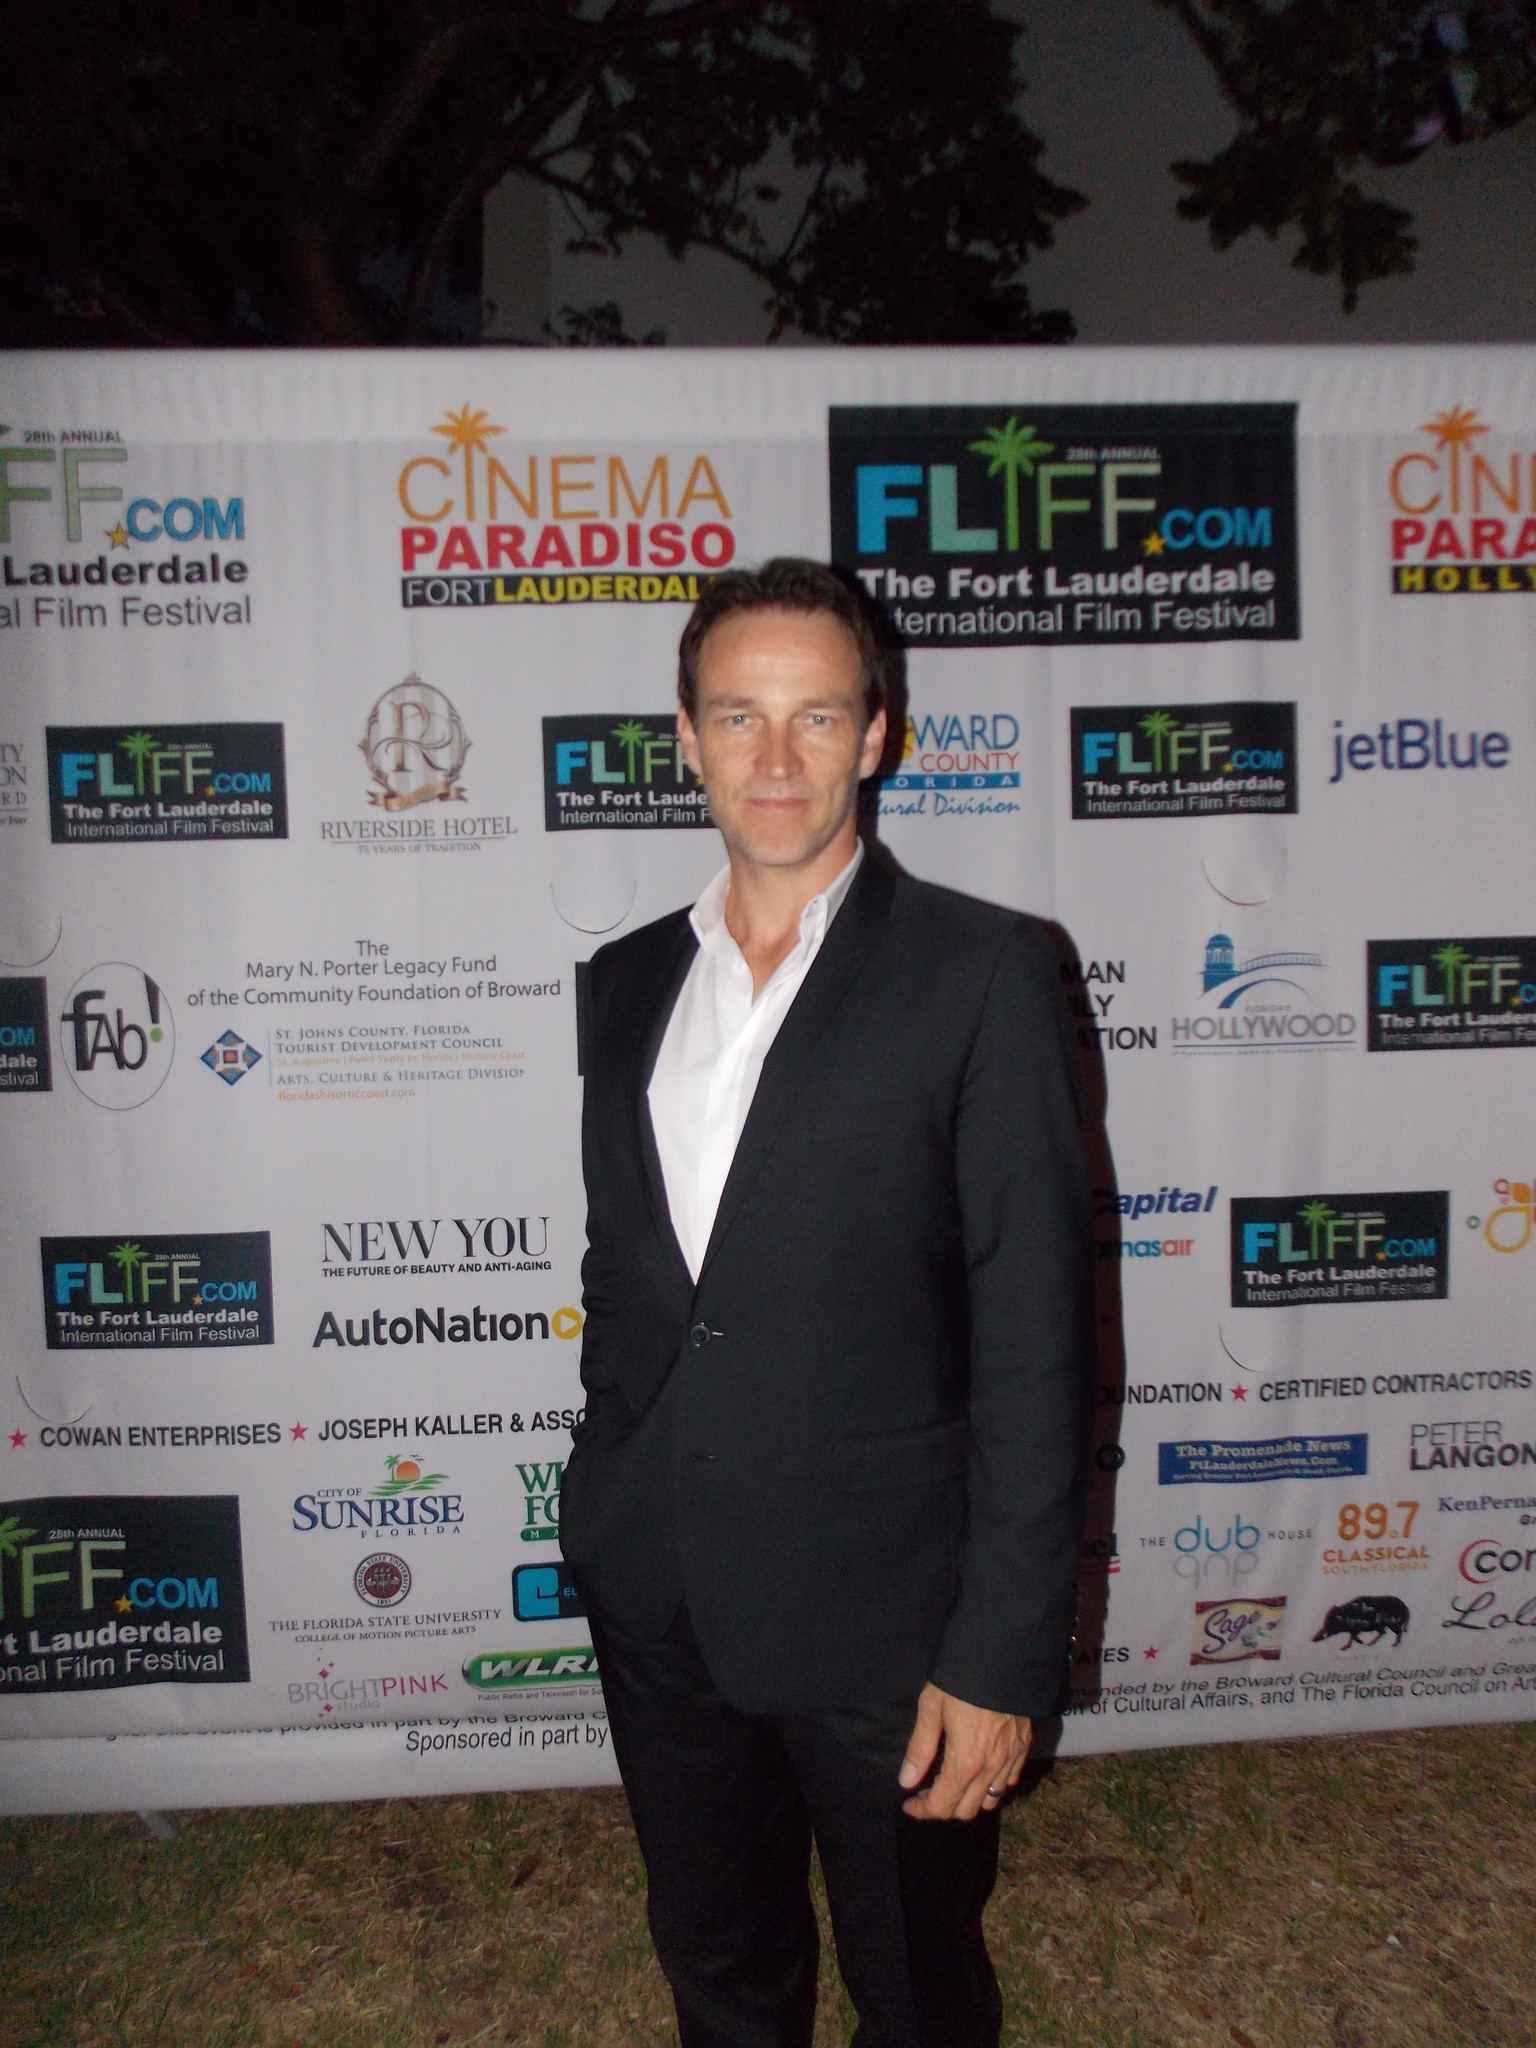 FLIFF opening night - Stephen Moyer